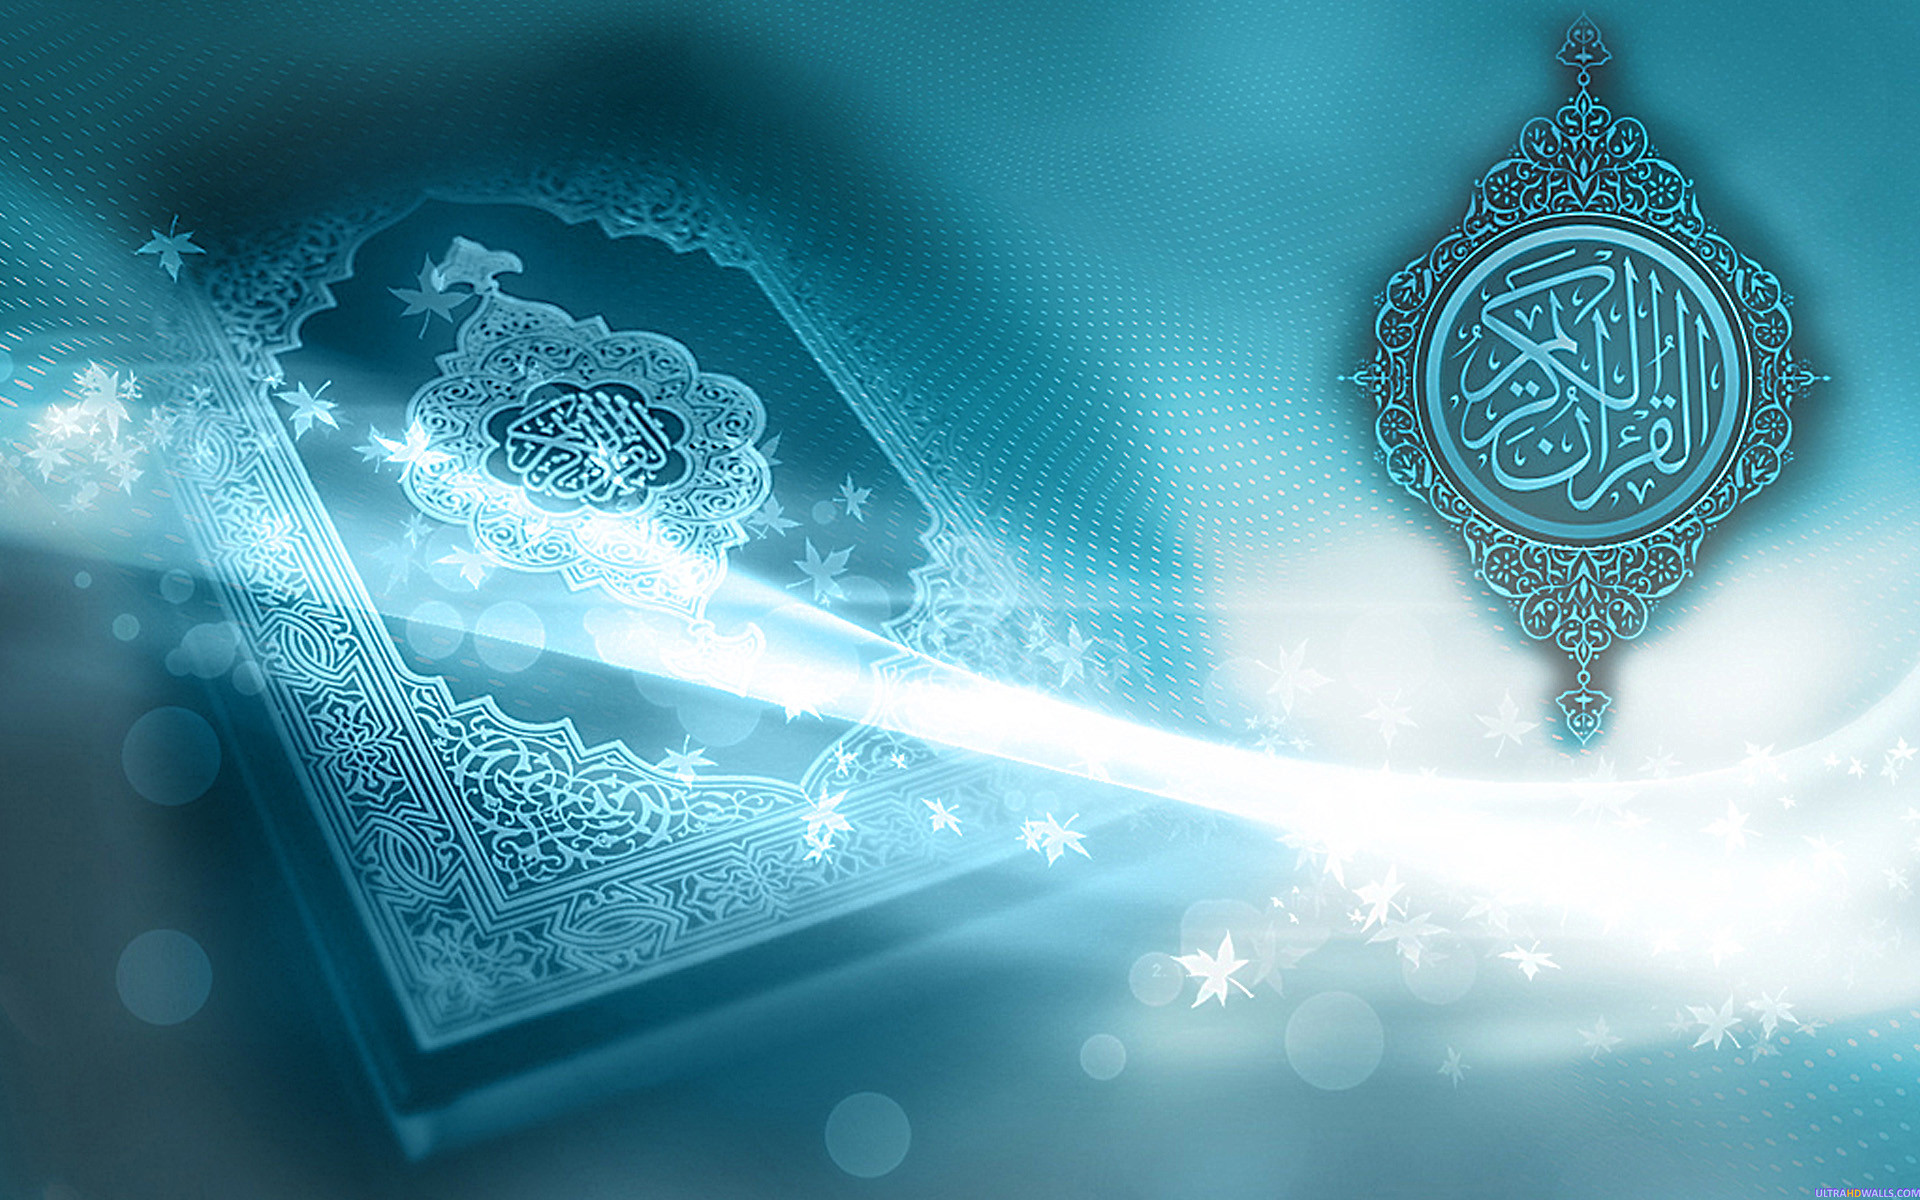 http://getwallpapers.com/wallpaper/full/b/7/2/1051491-free-download-quran-wallpaper-1920x1200.jpg